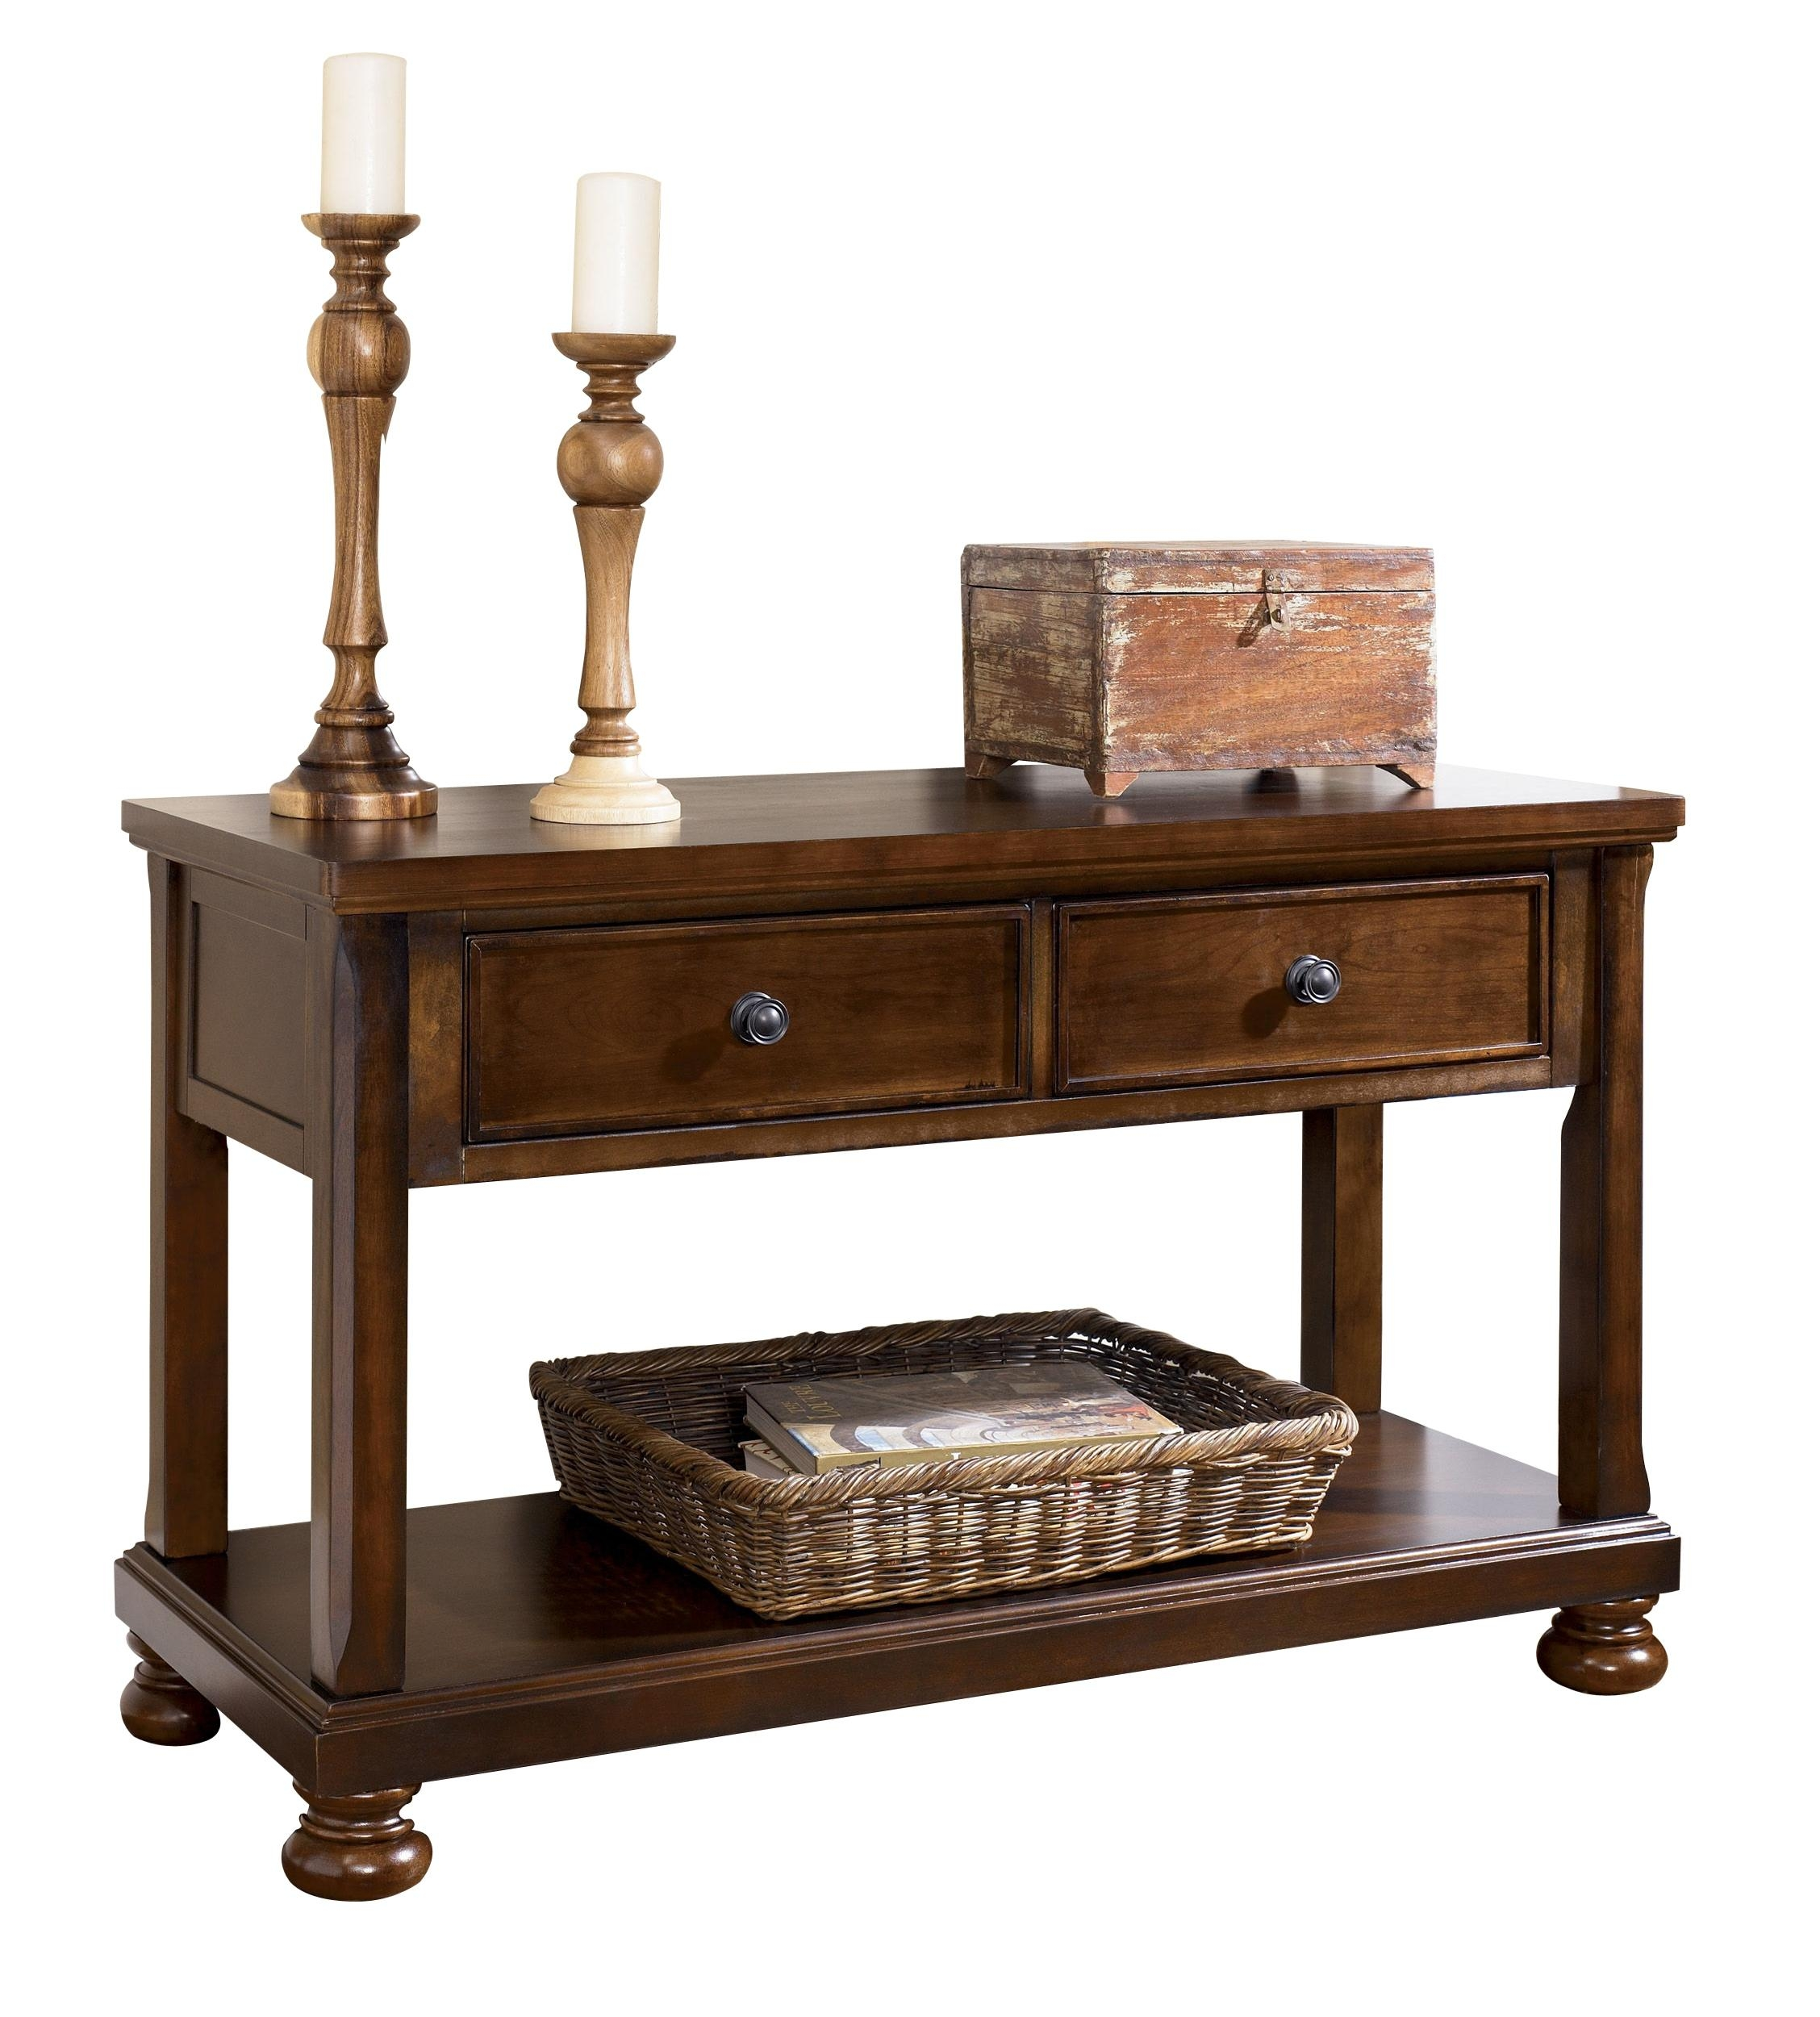 rustic sofa table canada clayton cheers 20 43 choices of tables with storages ideas